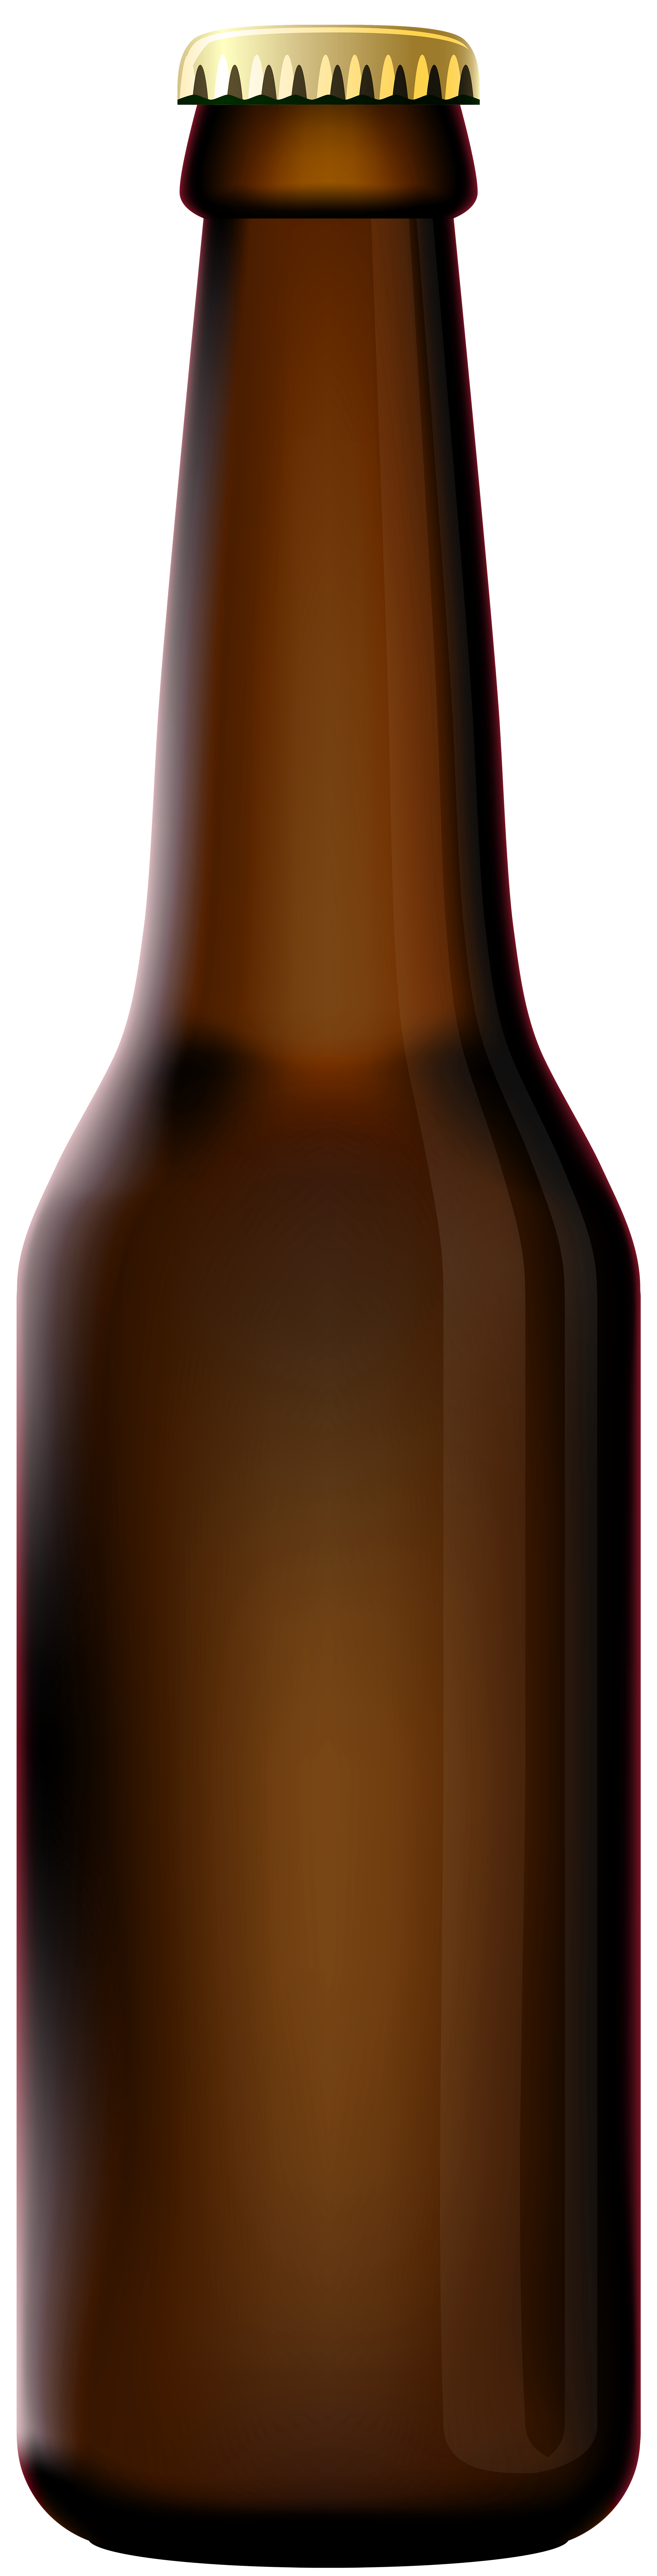 Beer bottle png. Clip art gallery yopriceville